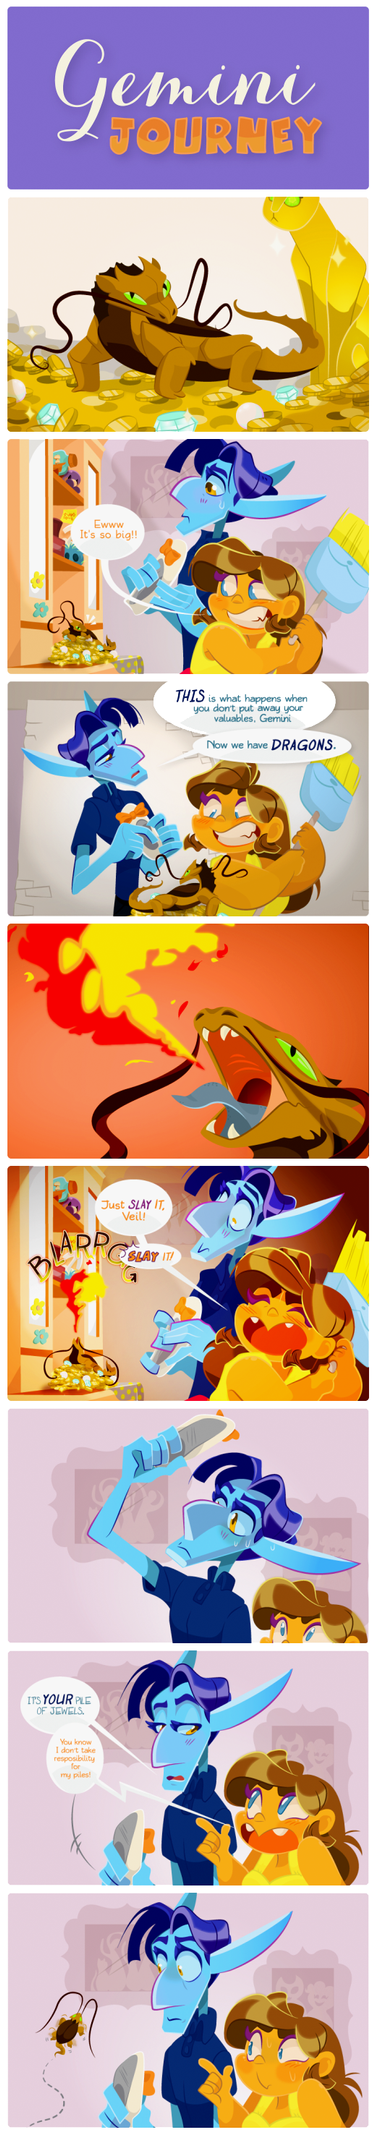 GJ Test Comic Pt.1 : Here There Be Dragons! by Saetje